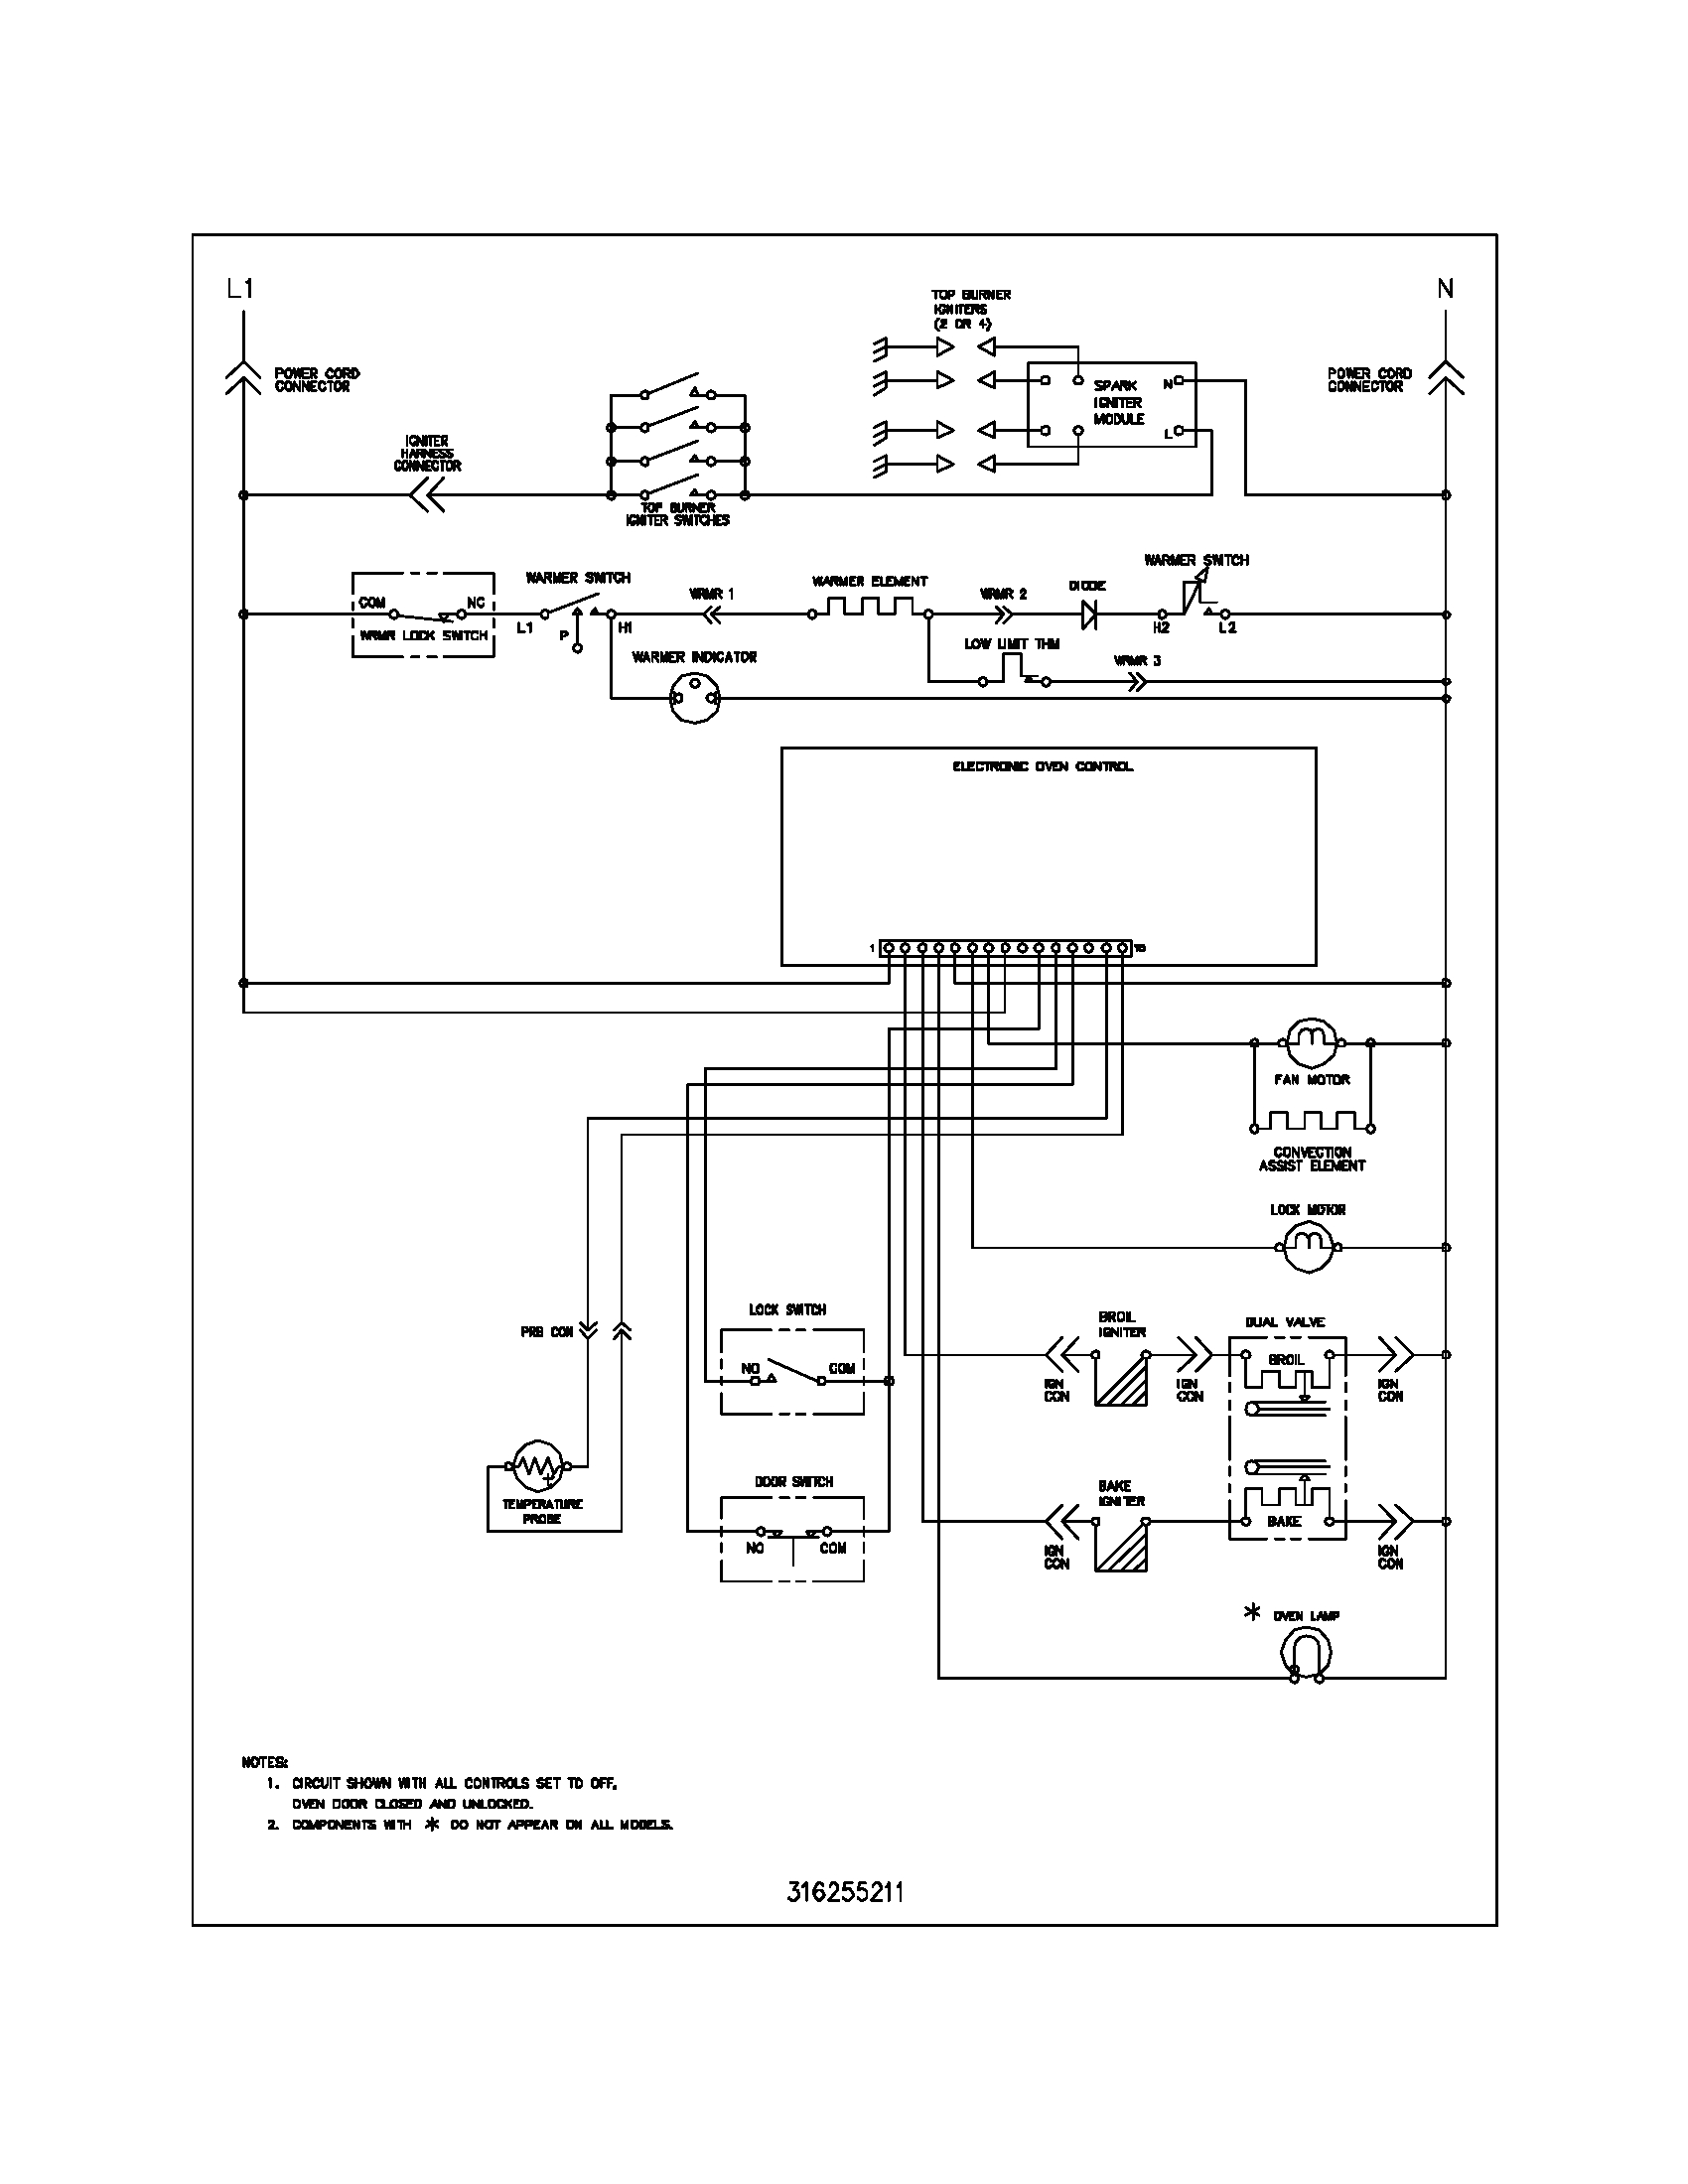 Eb15B Electric Furnace Wiring Diagrams - All Wiring Diagram - Goodman Electric Furnace Wiring Diagram